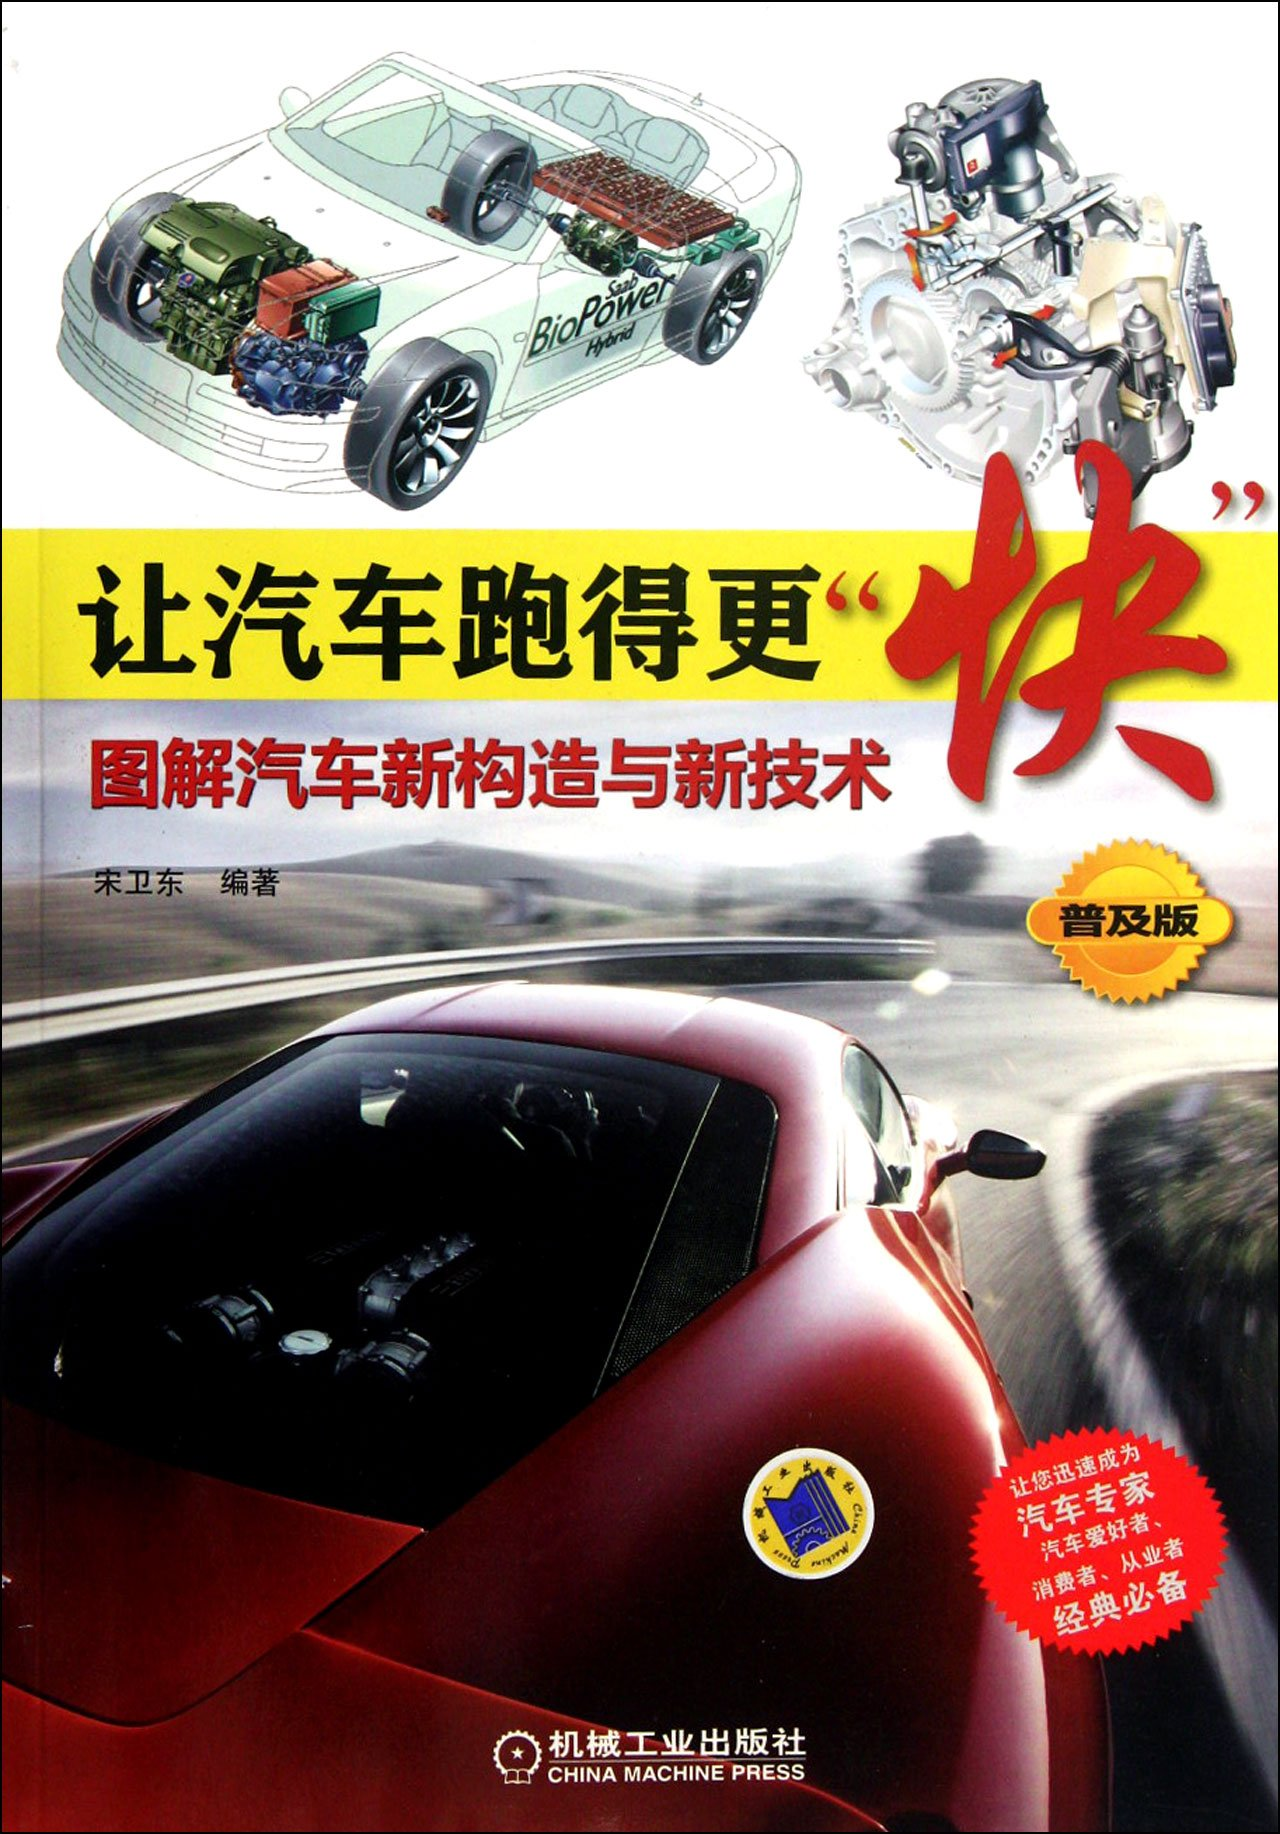 let car run faster diagram of new car structure and technology (chinese  edition) (chinese) paperback – july 1, 2012